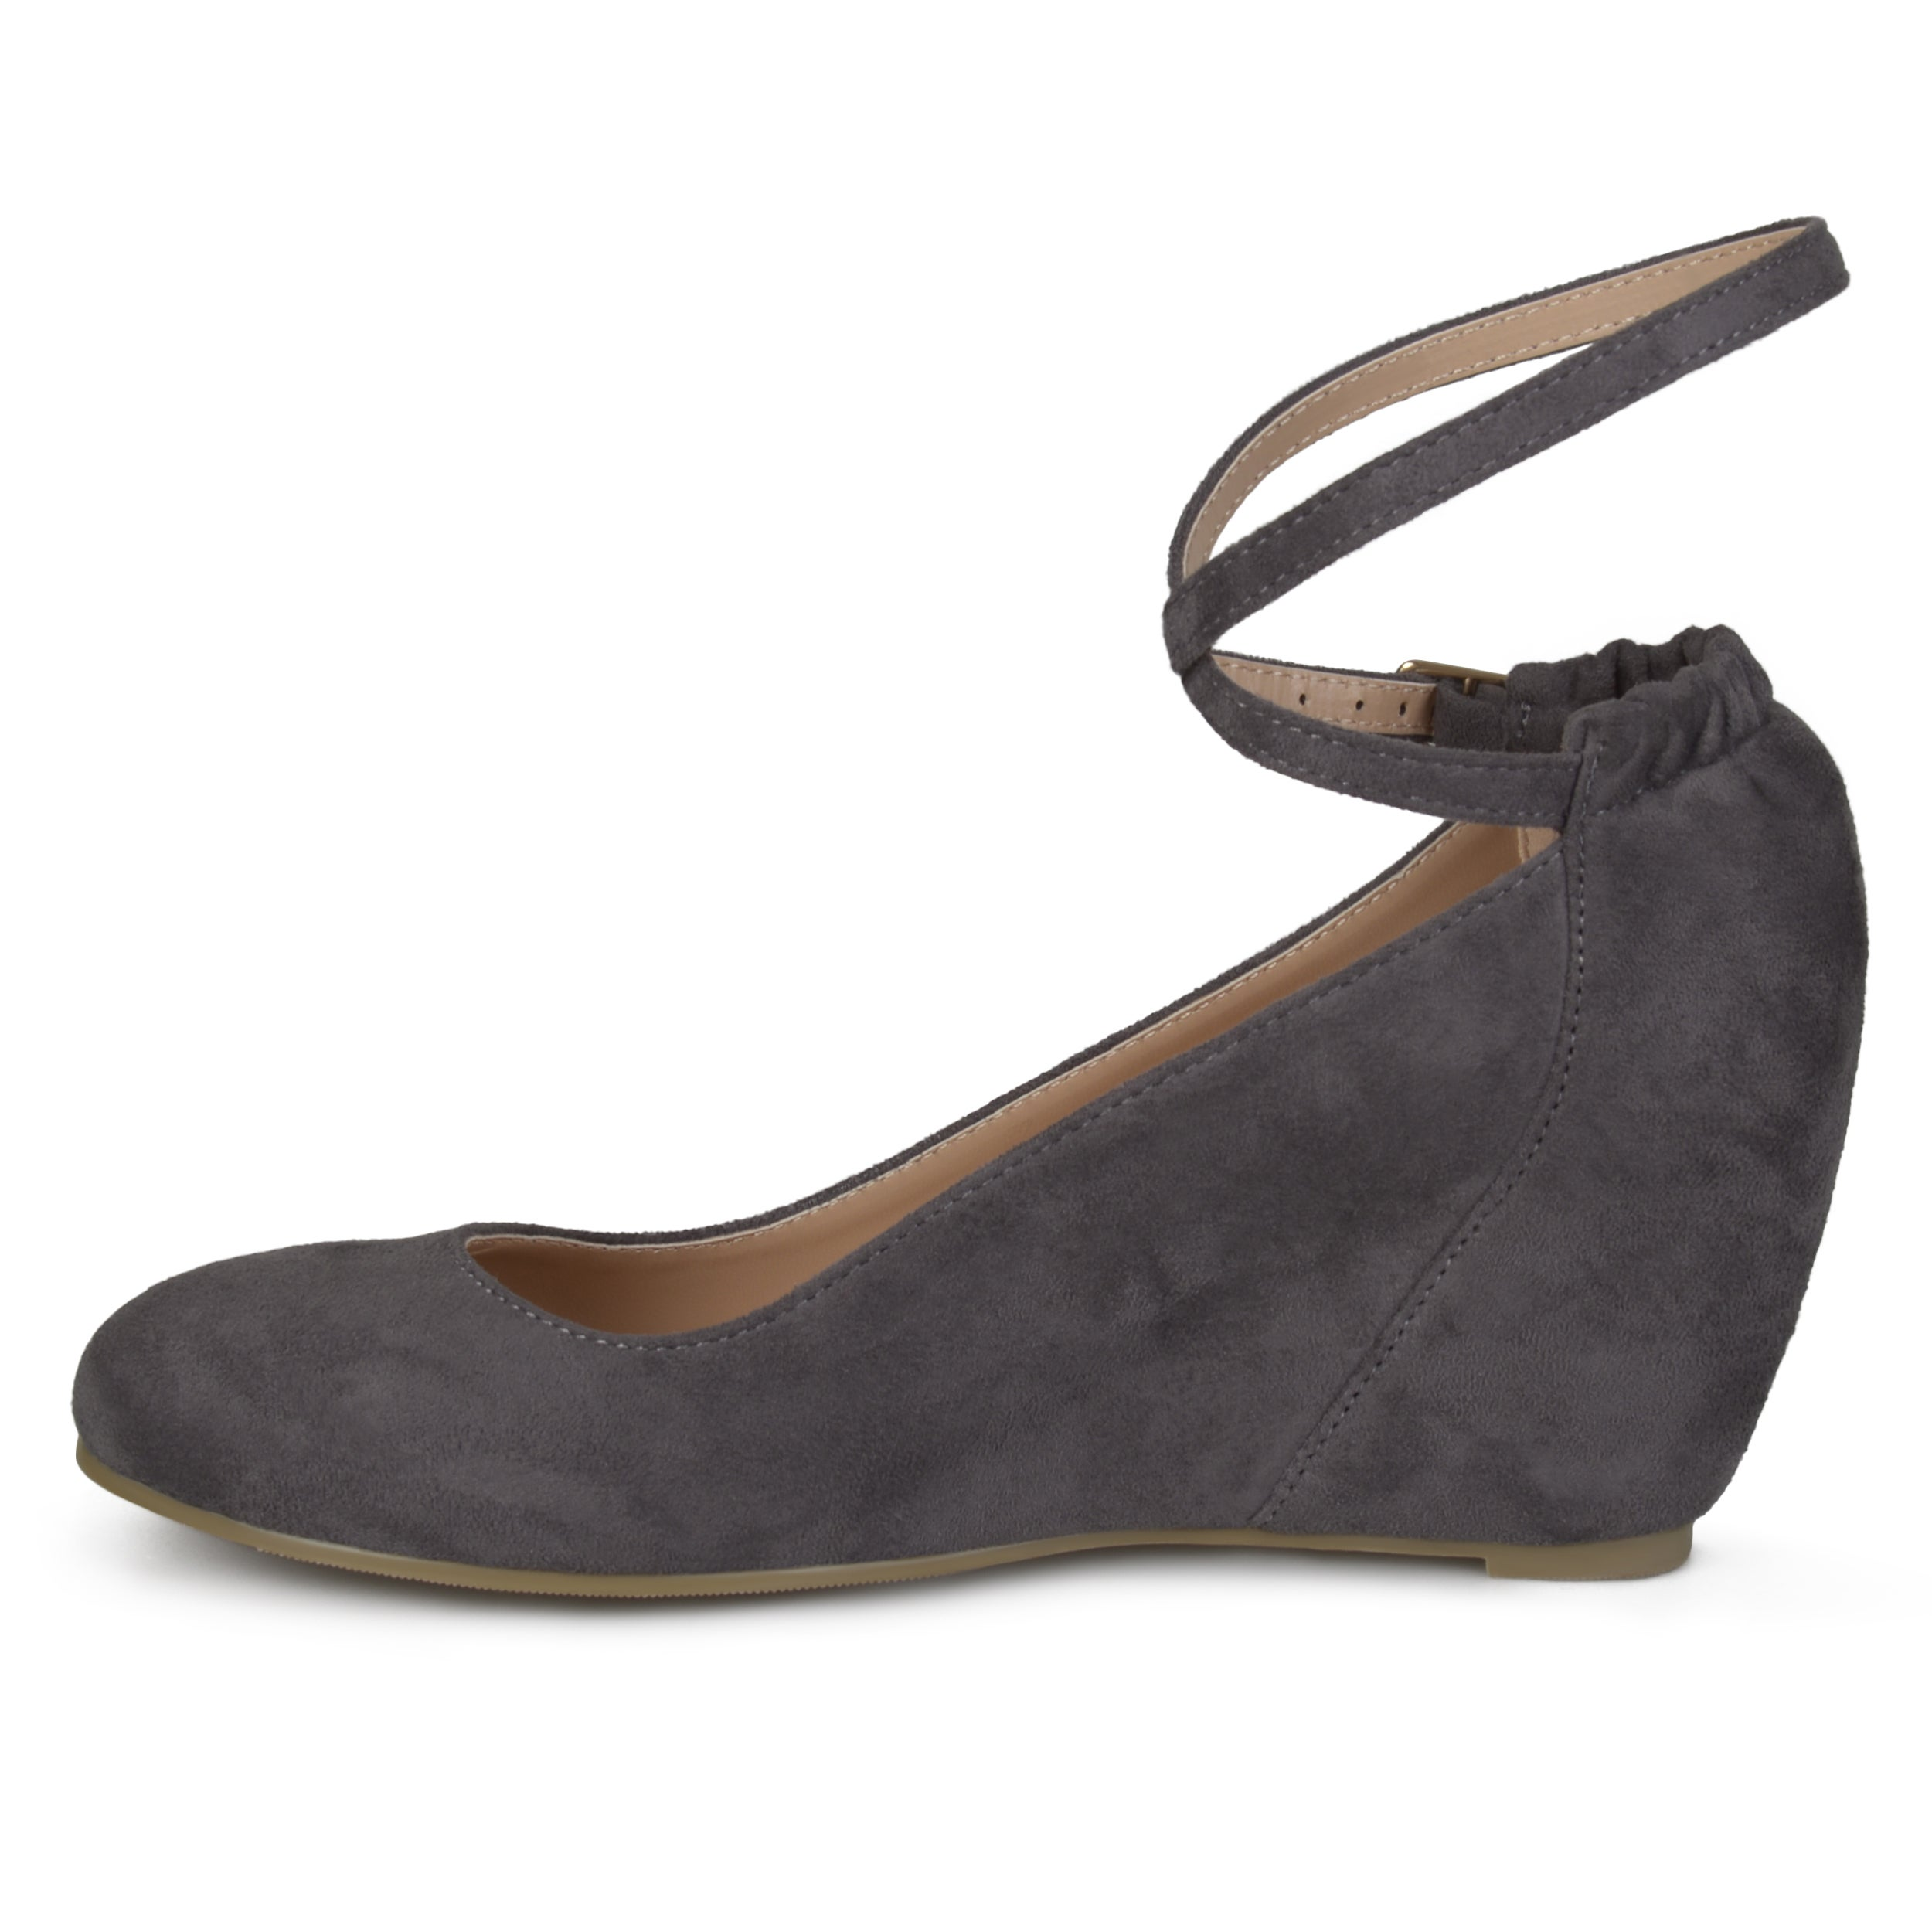 46a2ac0115d Shop Journee Collection Women s  Tibby  Faux Suede Wedges - Free Shipping  On Orders Over  45 - Overstock - 13304483